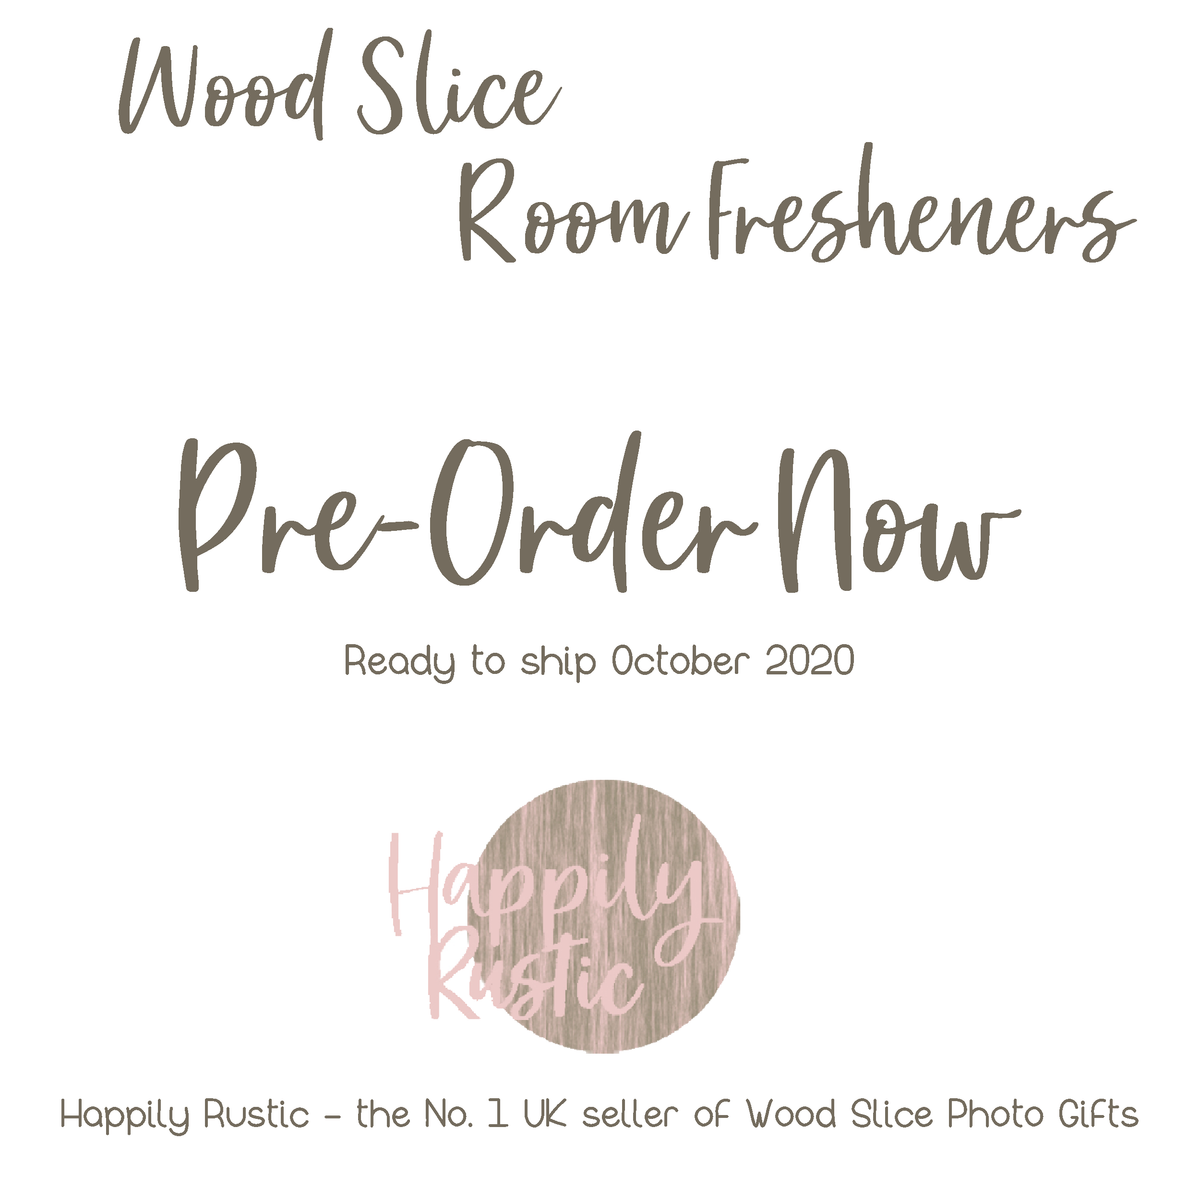 Text says - Wood Slice Room Fresheners - Preo Order Now - Ready to ship October 2020